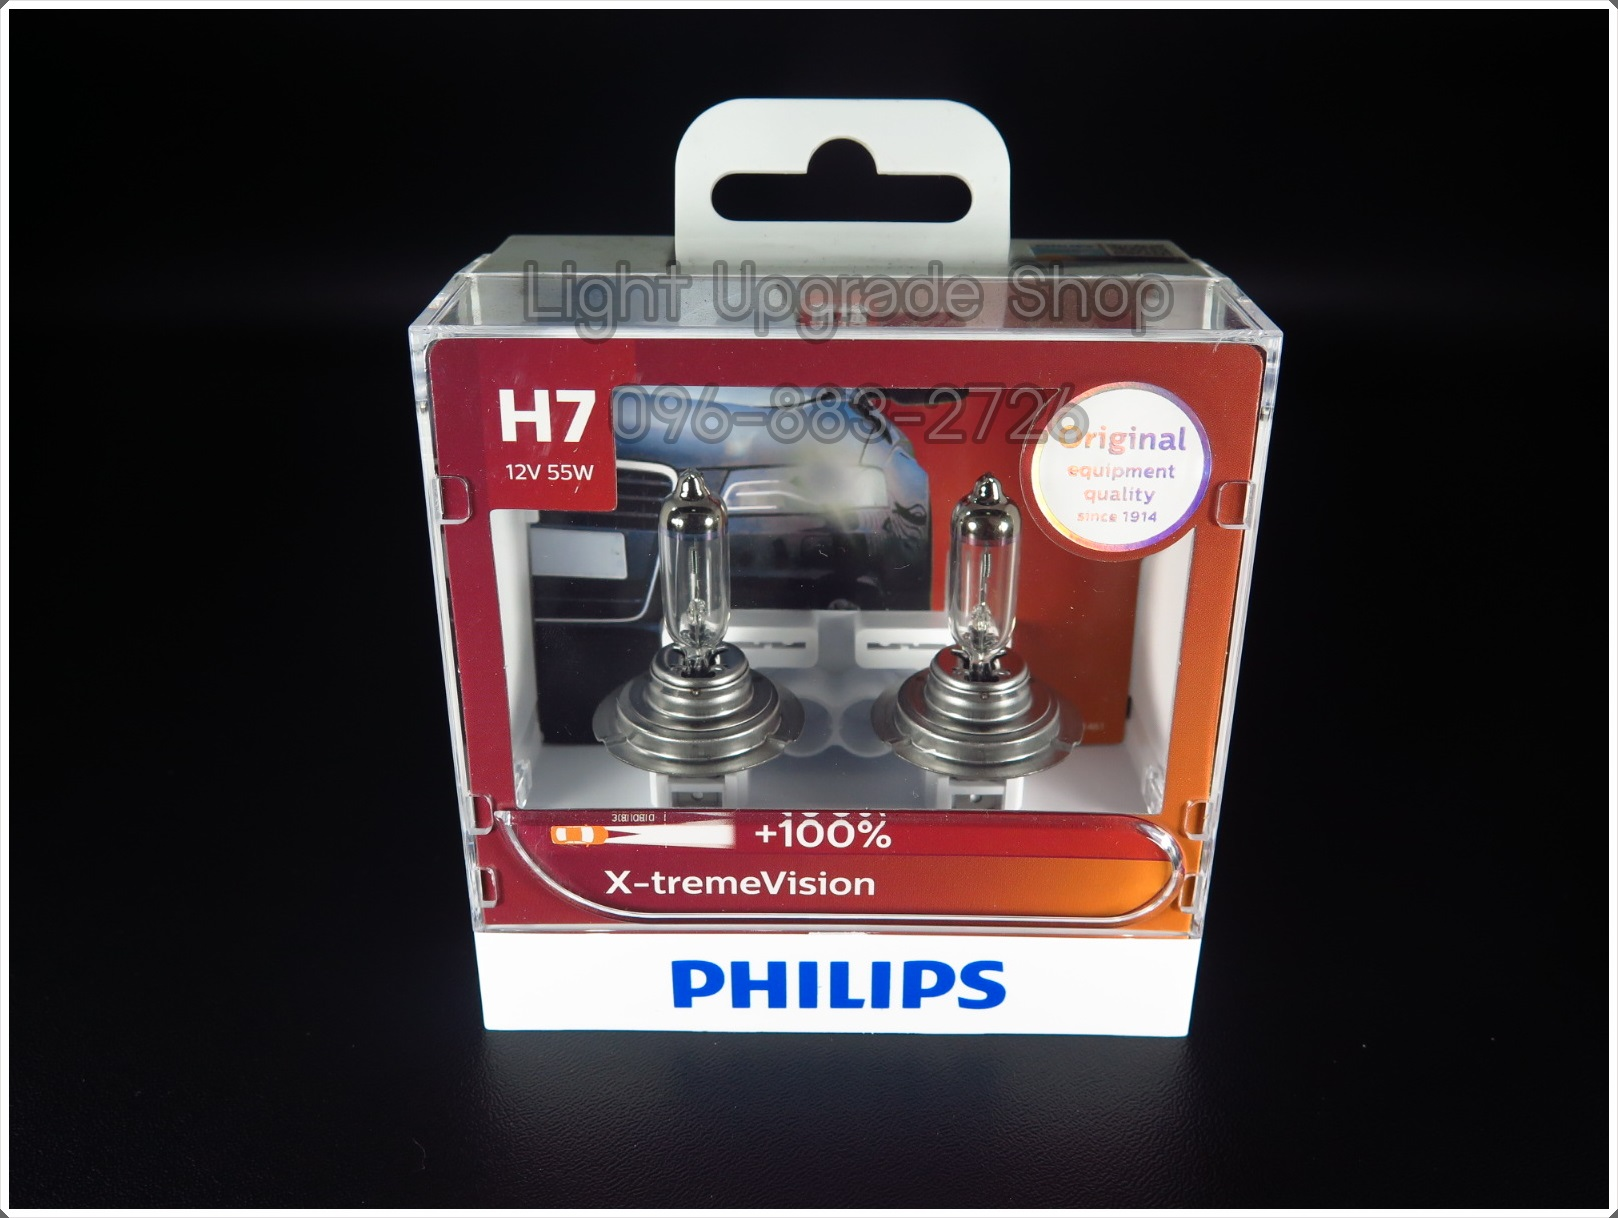 Philips X-Treme Vision +100% [H7]